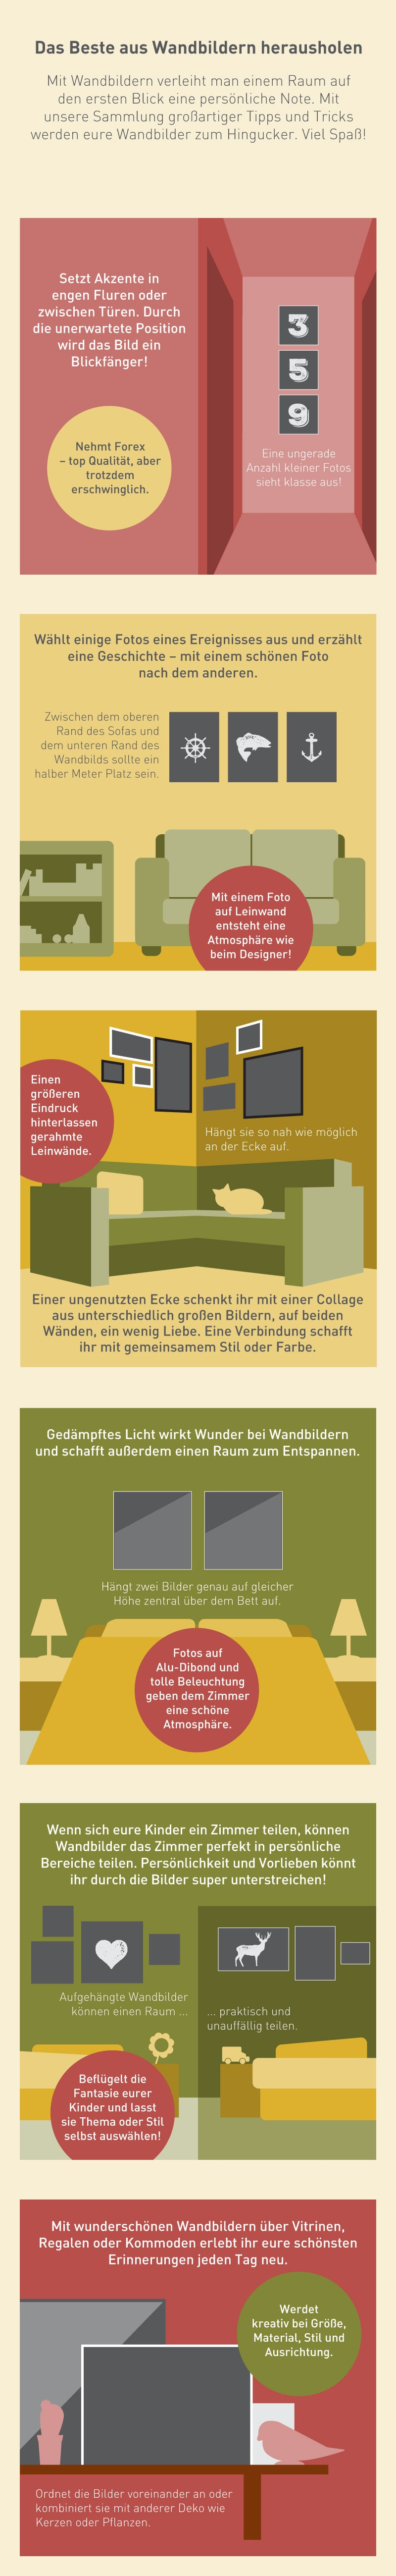 7301_WC_Infographic_WD_800x5200_BLOG_FALL_2015_DE